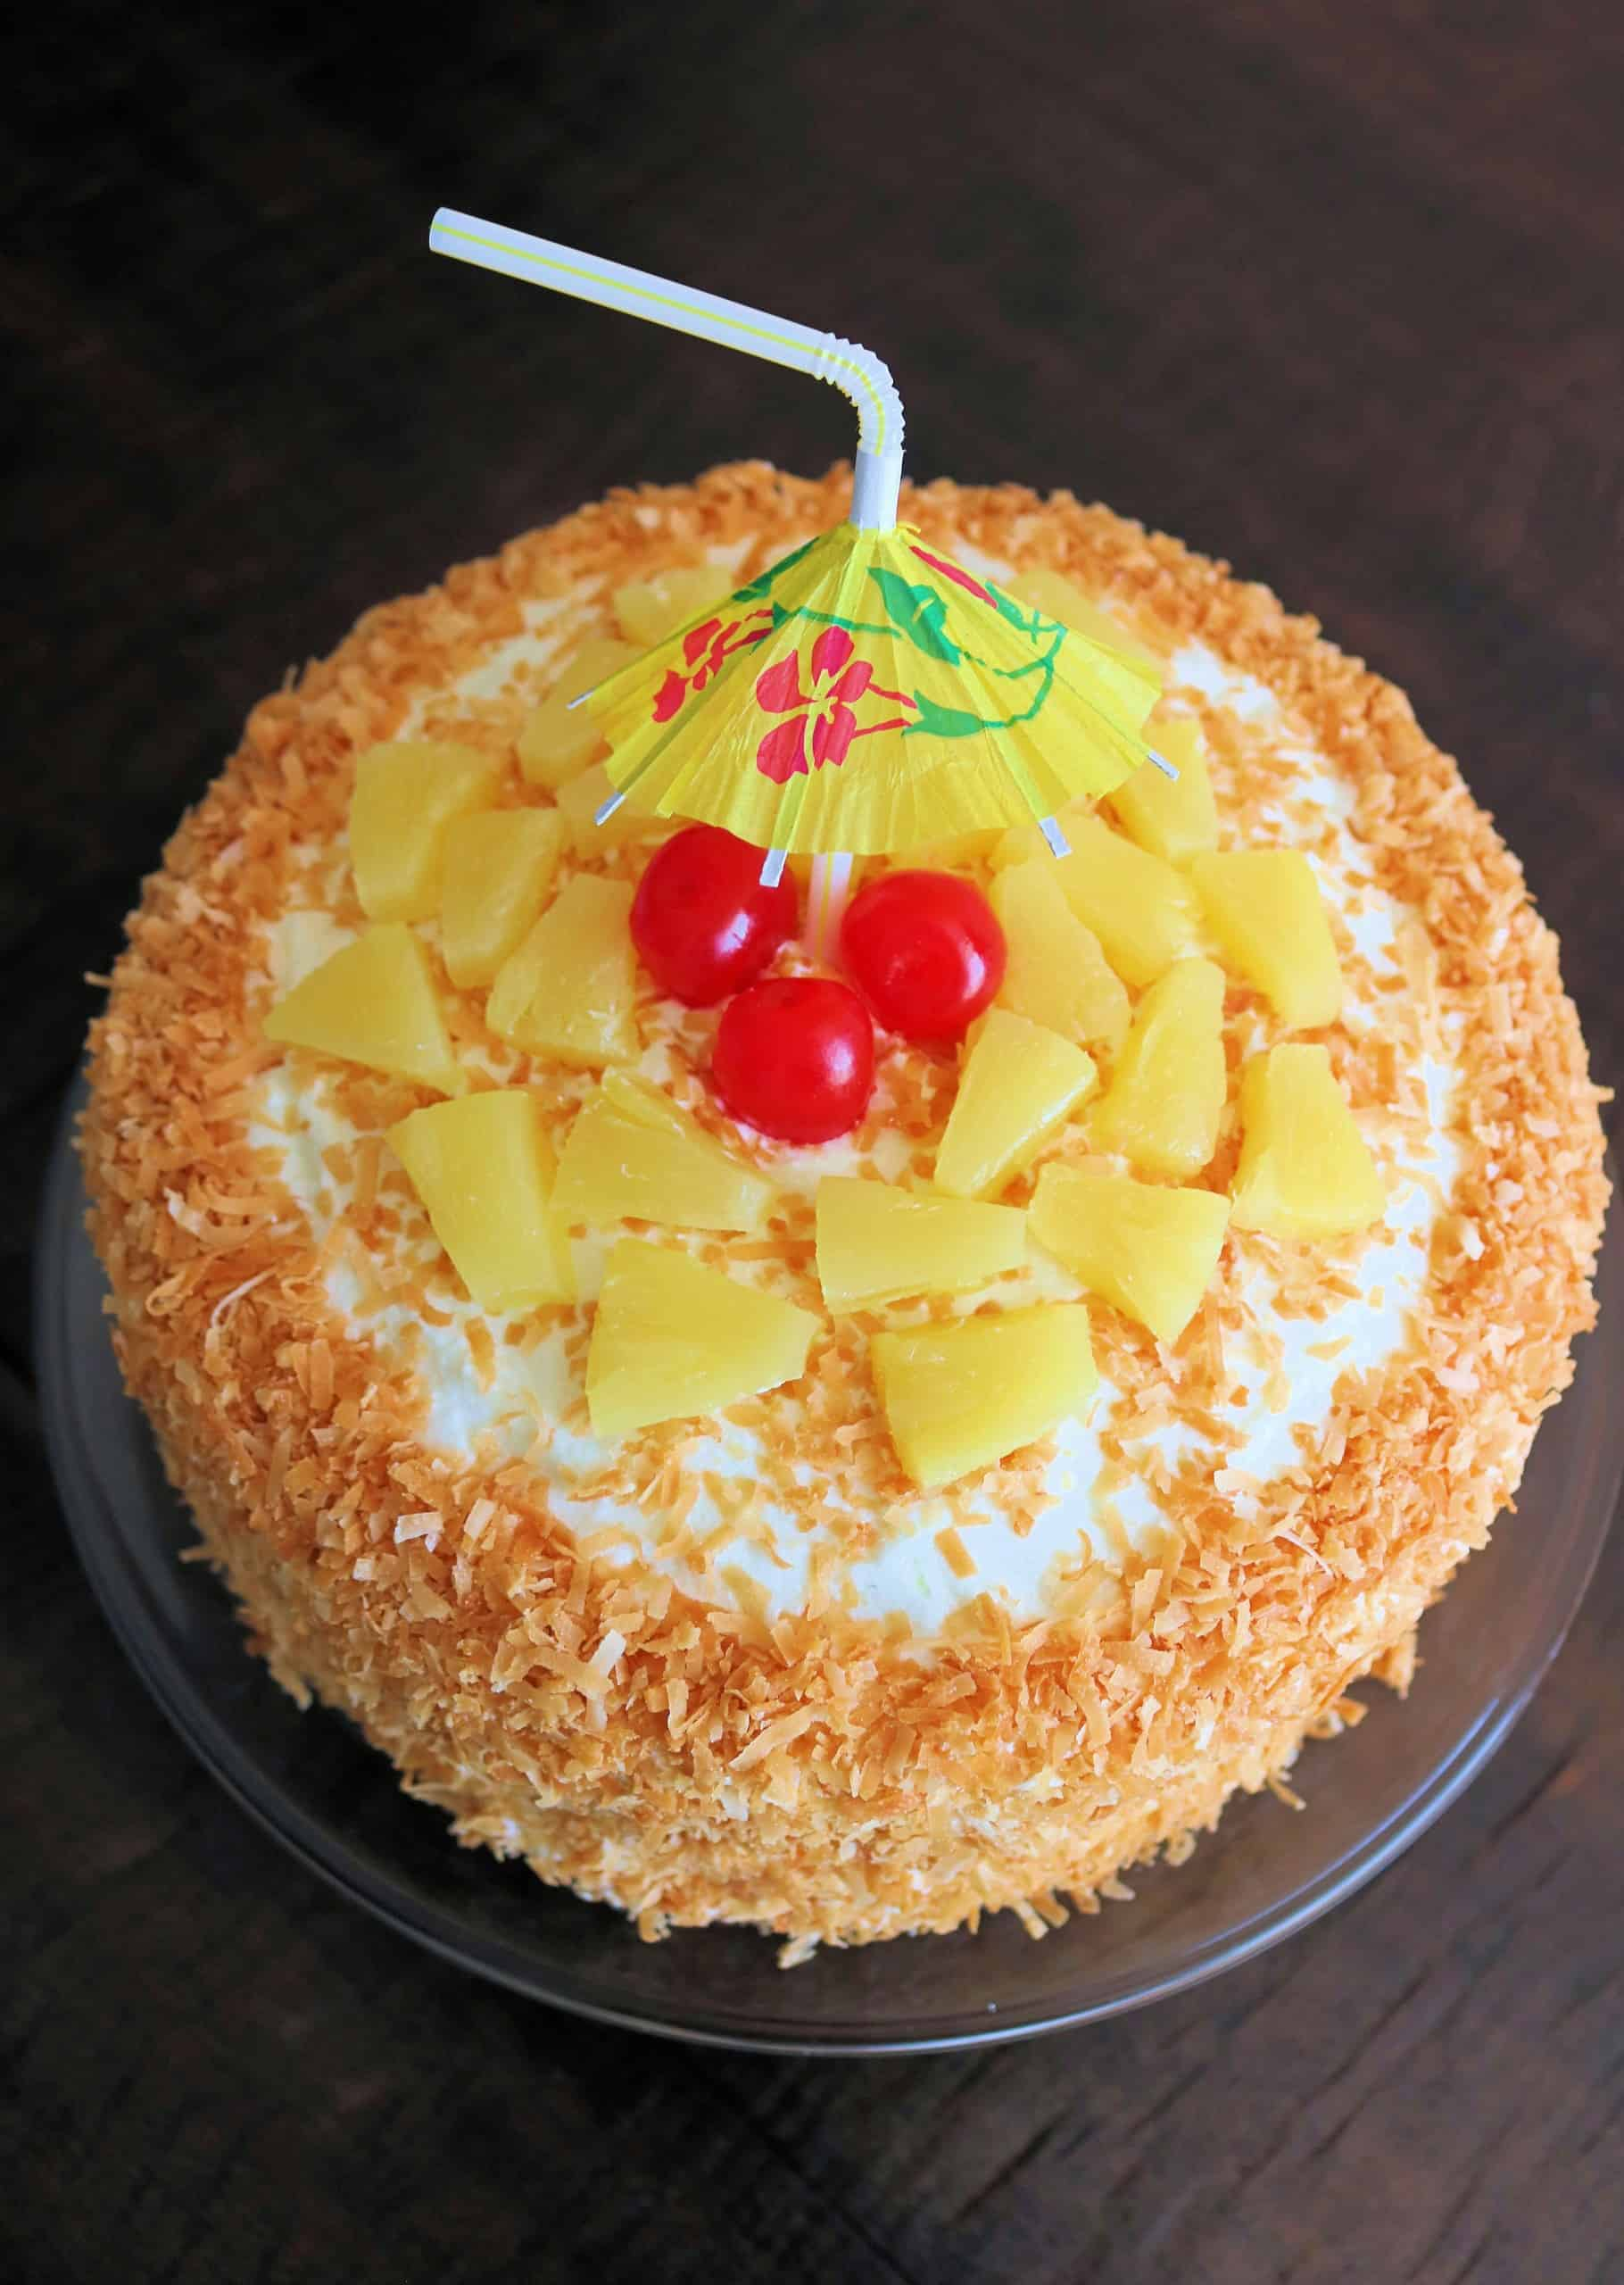 Try my Best Ever Pina Colada Cake with layers of moist pineapple, coconut, and rum flavored cake, a sweet crushed pineapple filling, and a luscious whipped cream cheese frosting coated in toasted coconut. Top it with pineapple, maraschino cherries, and a cute little umbrella, and this incredible pina colada cake will take you on a tropical getaway! #pinacolada #cake #pinacoladacake #coconutcake #pineapplecake #coconutpineapplecake #tropicalcake